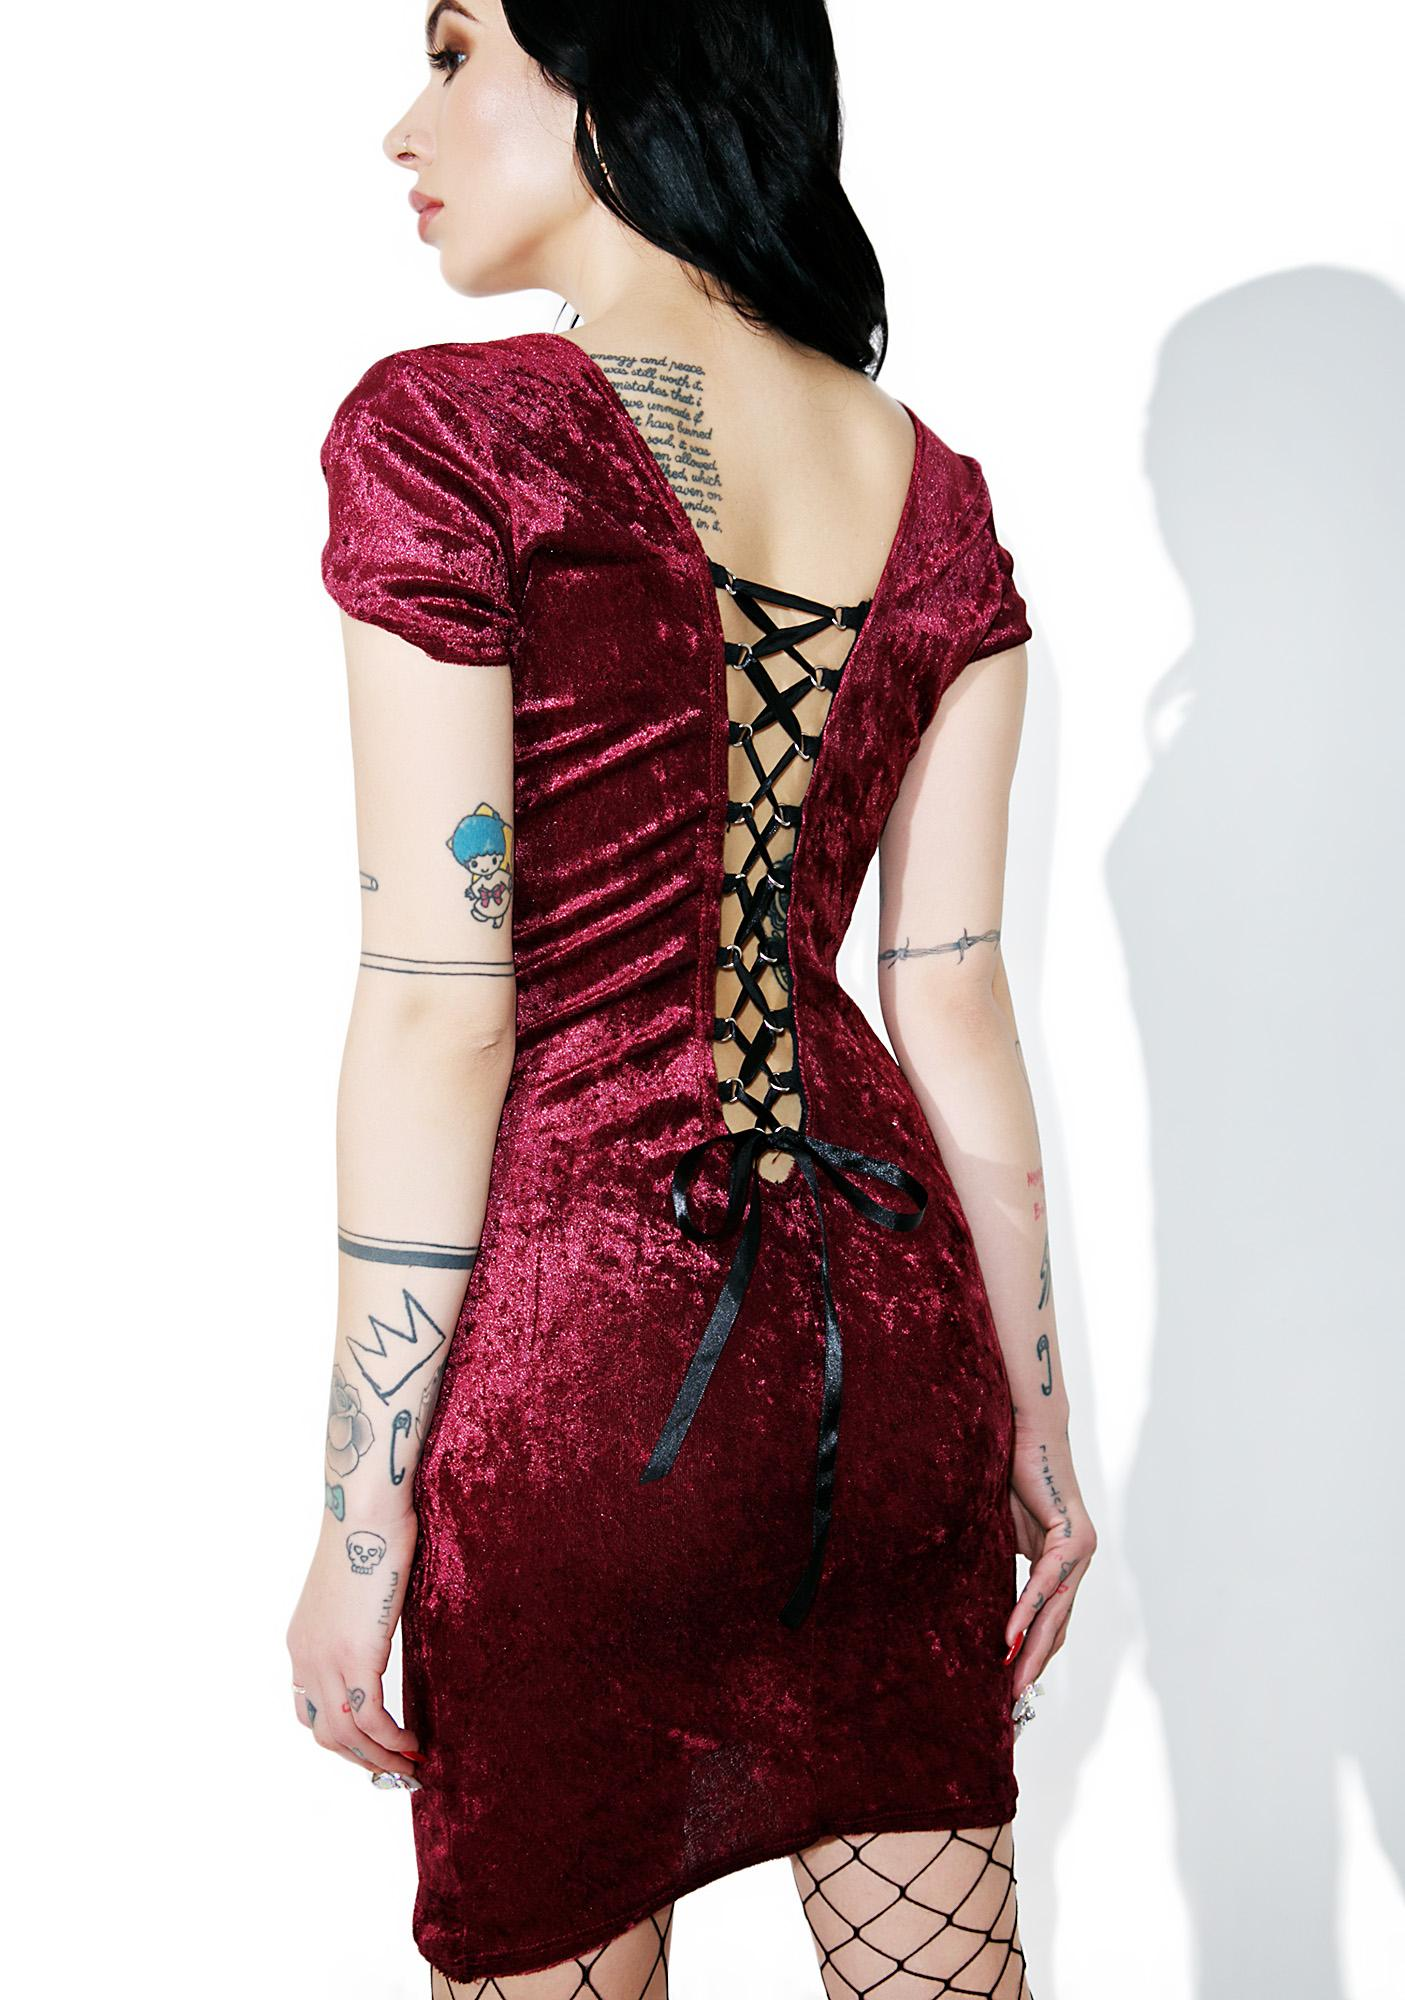 Black Heart Corset Dress